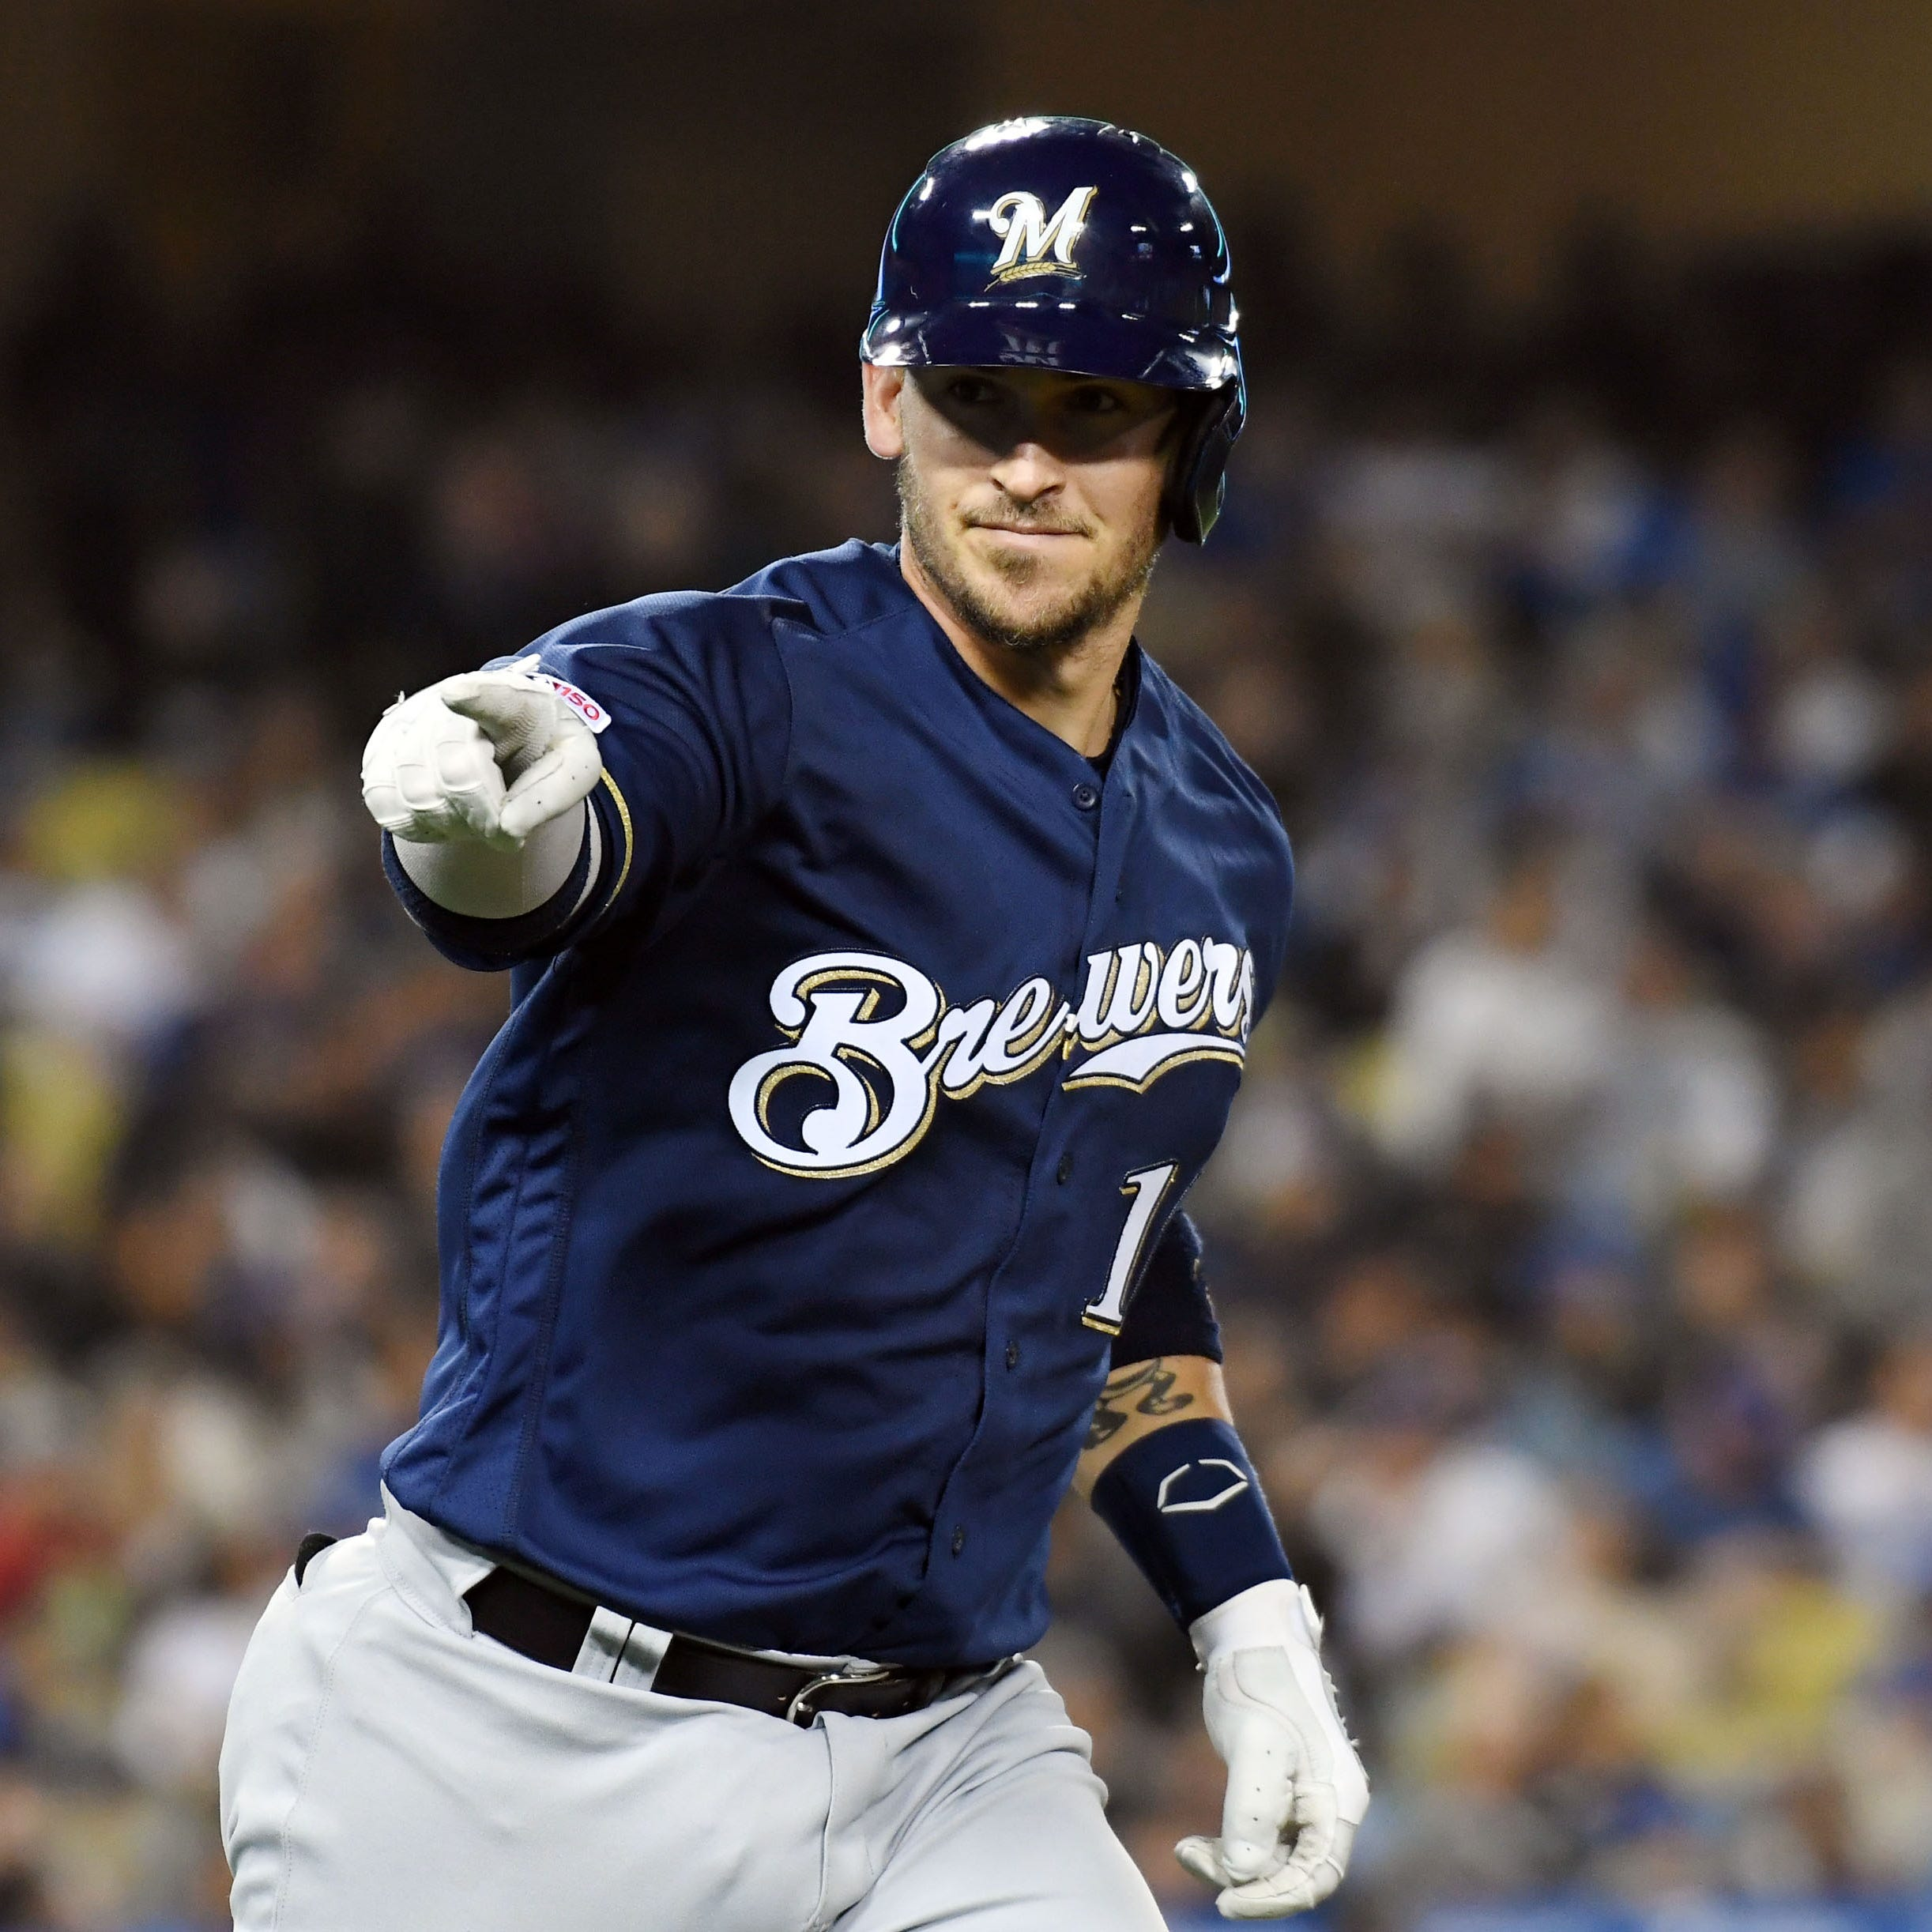 Yasmani Grandal gets a start at first base as the Brewers search for answers at that spot